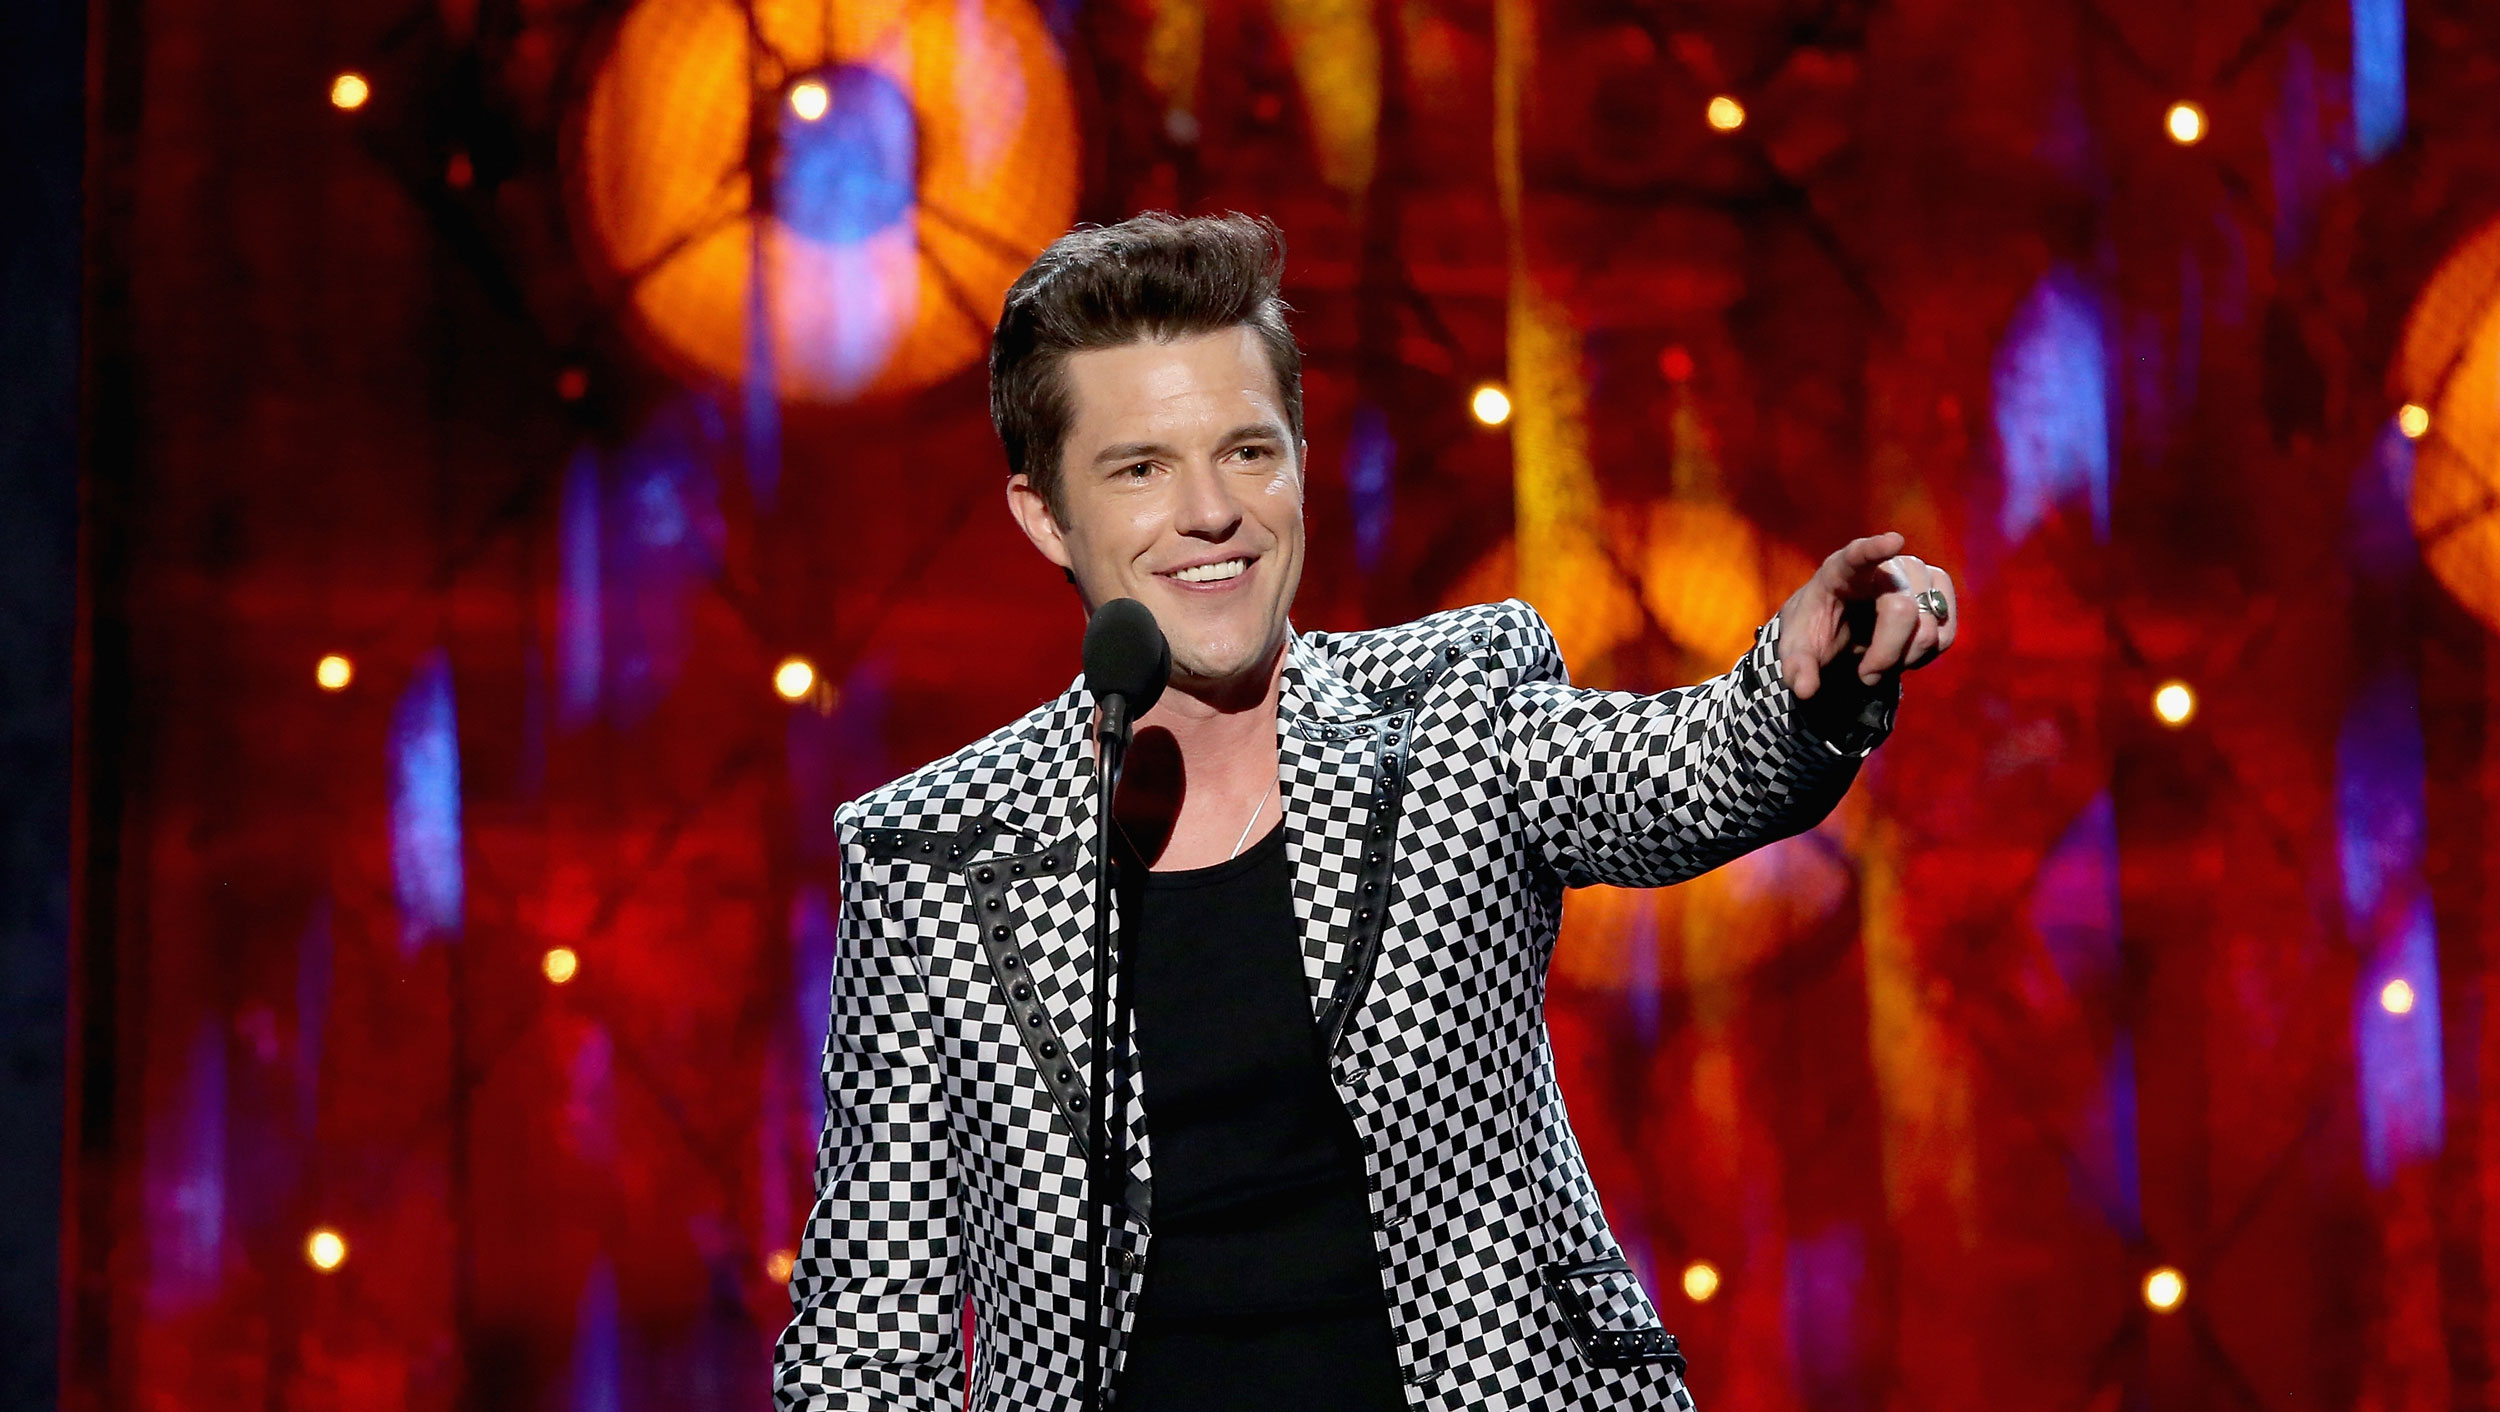 Brandon Flowers parla del tributo a Tom Petty e ai Cars alla Rock and Roll Hall of Fame